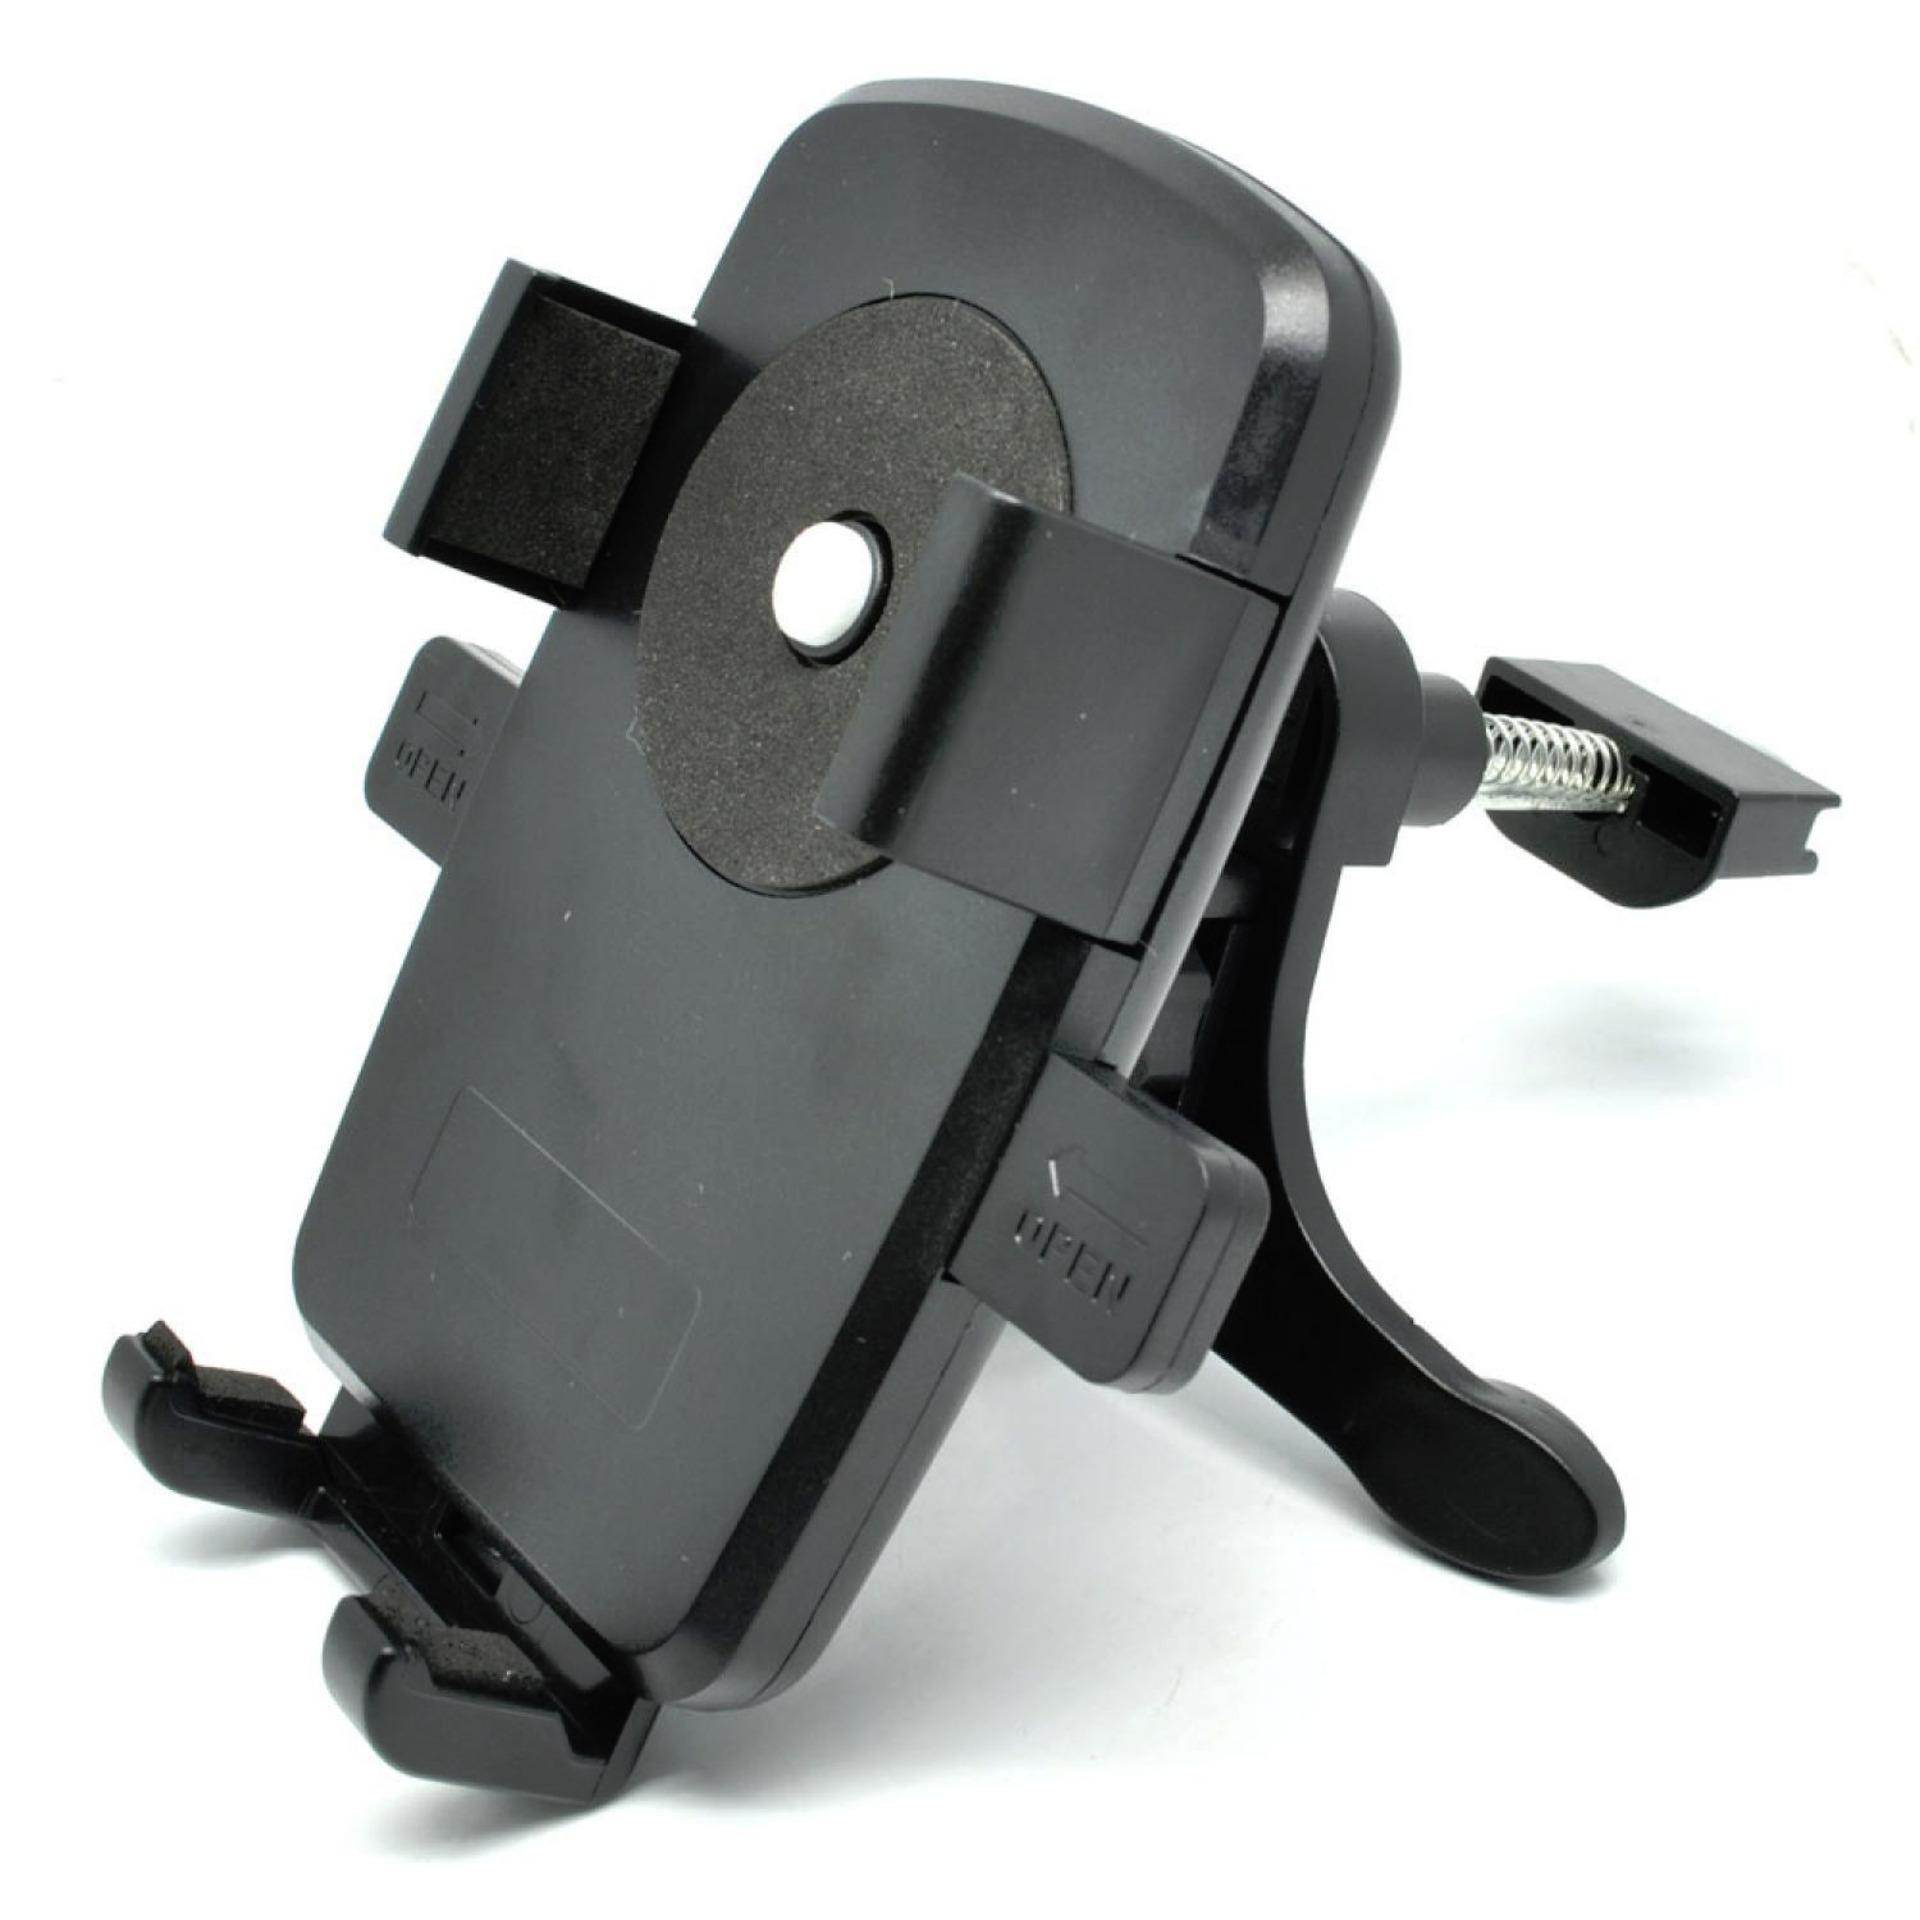 Harga Universal Mobile Phone Car Holder Air Vent Weifeng Online